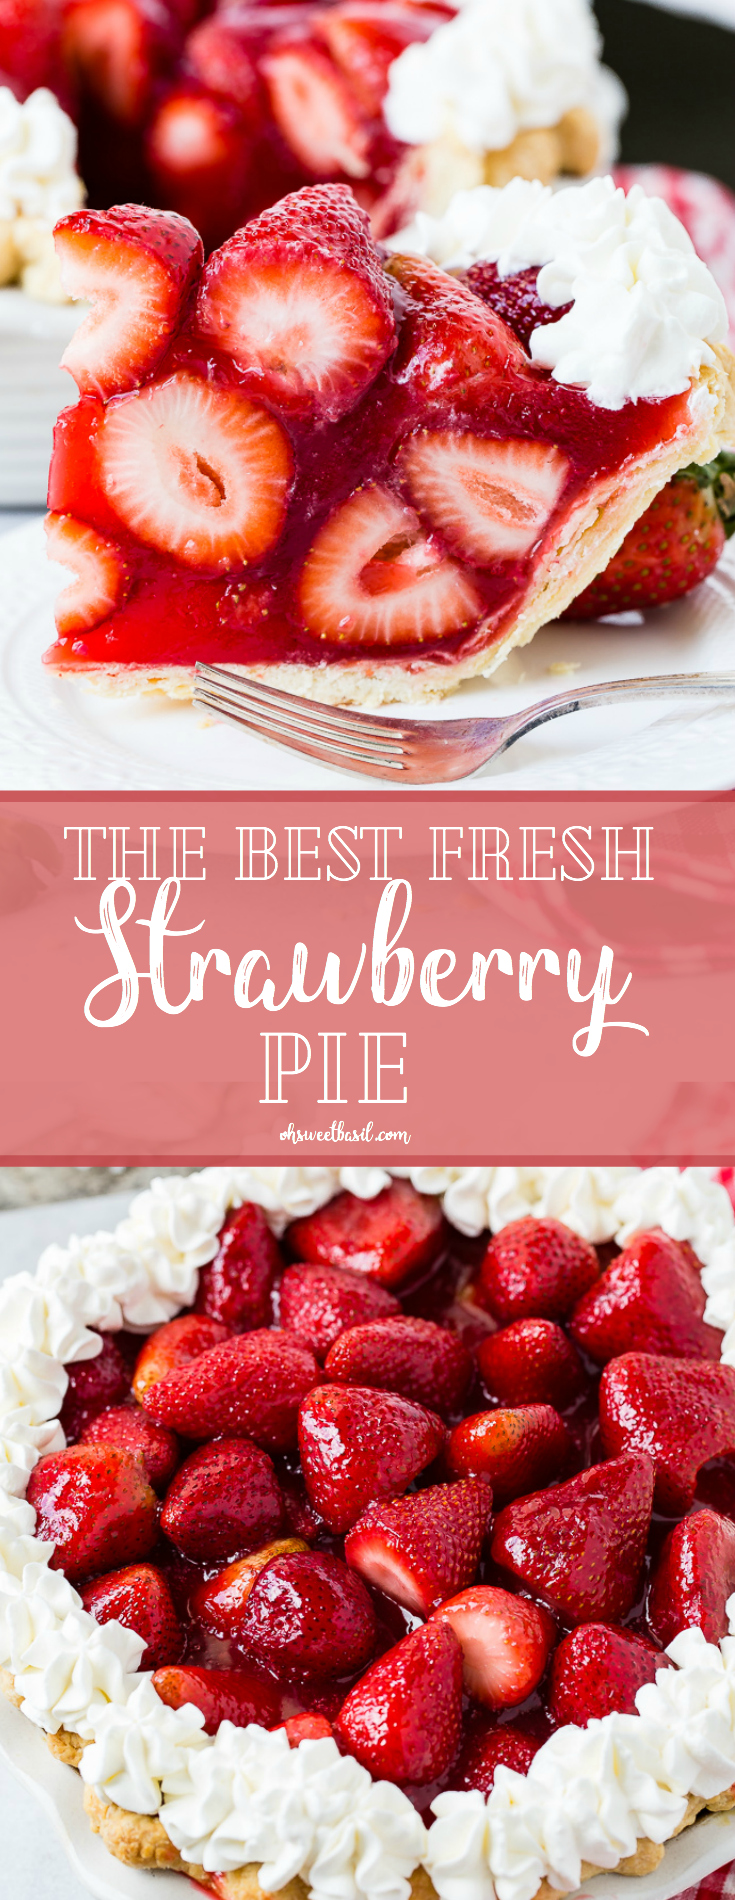 A white plate with a big slice of fresh strawberry pie made with jello and a little stabilized whipped cream with a red and white checkered napkin underneath and the whole pie in the background